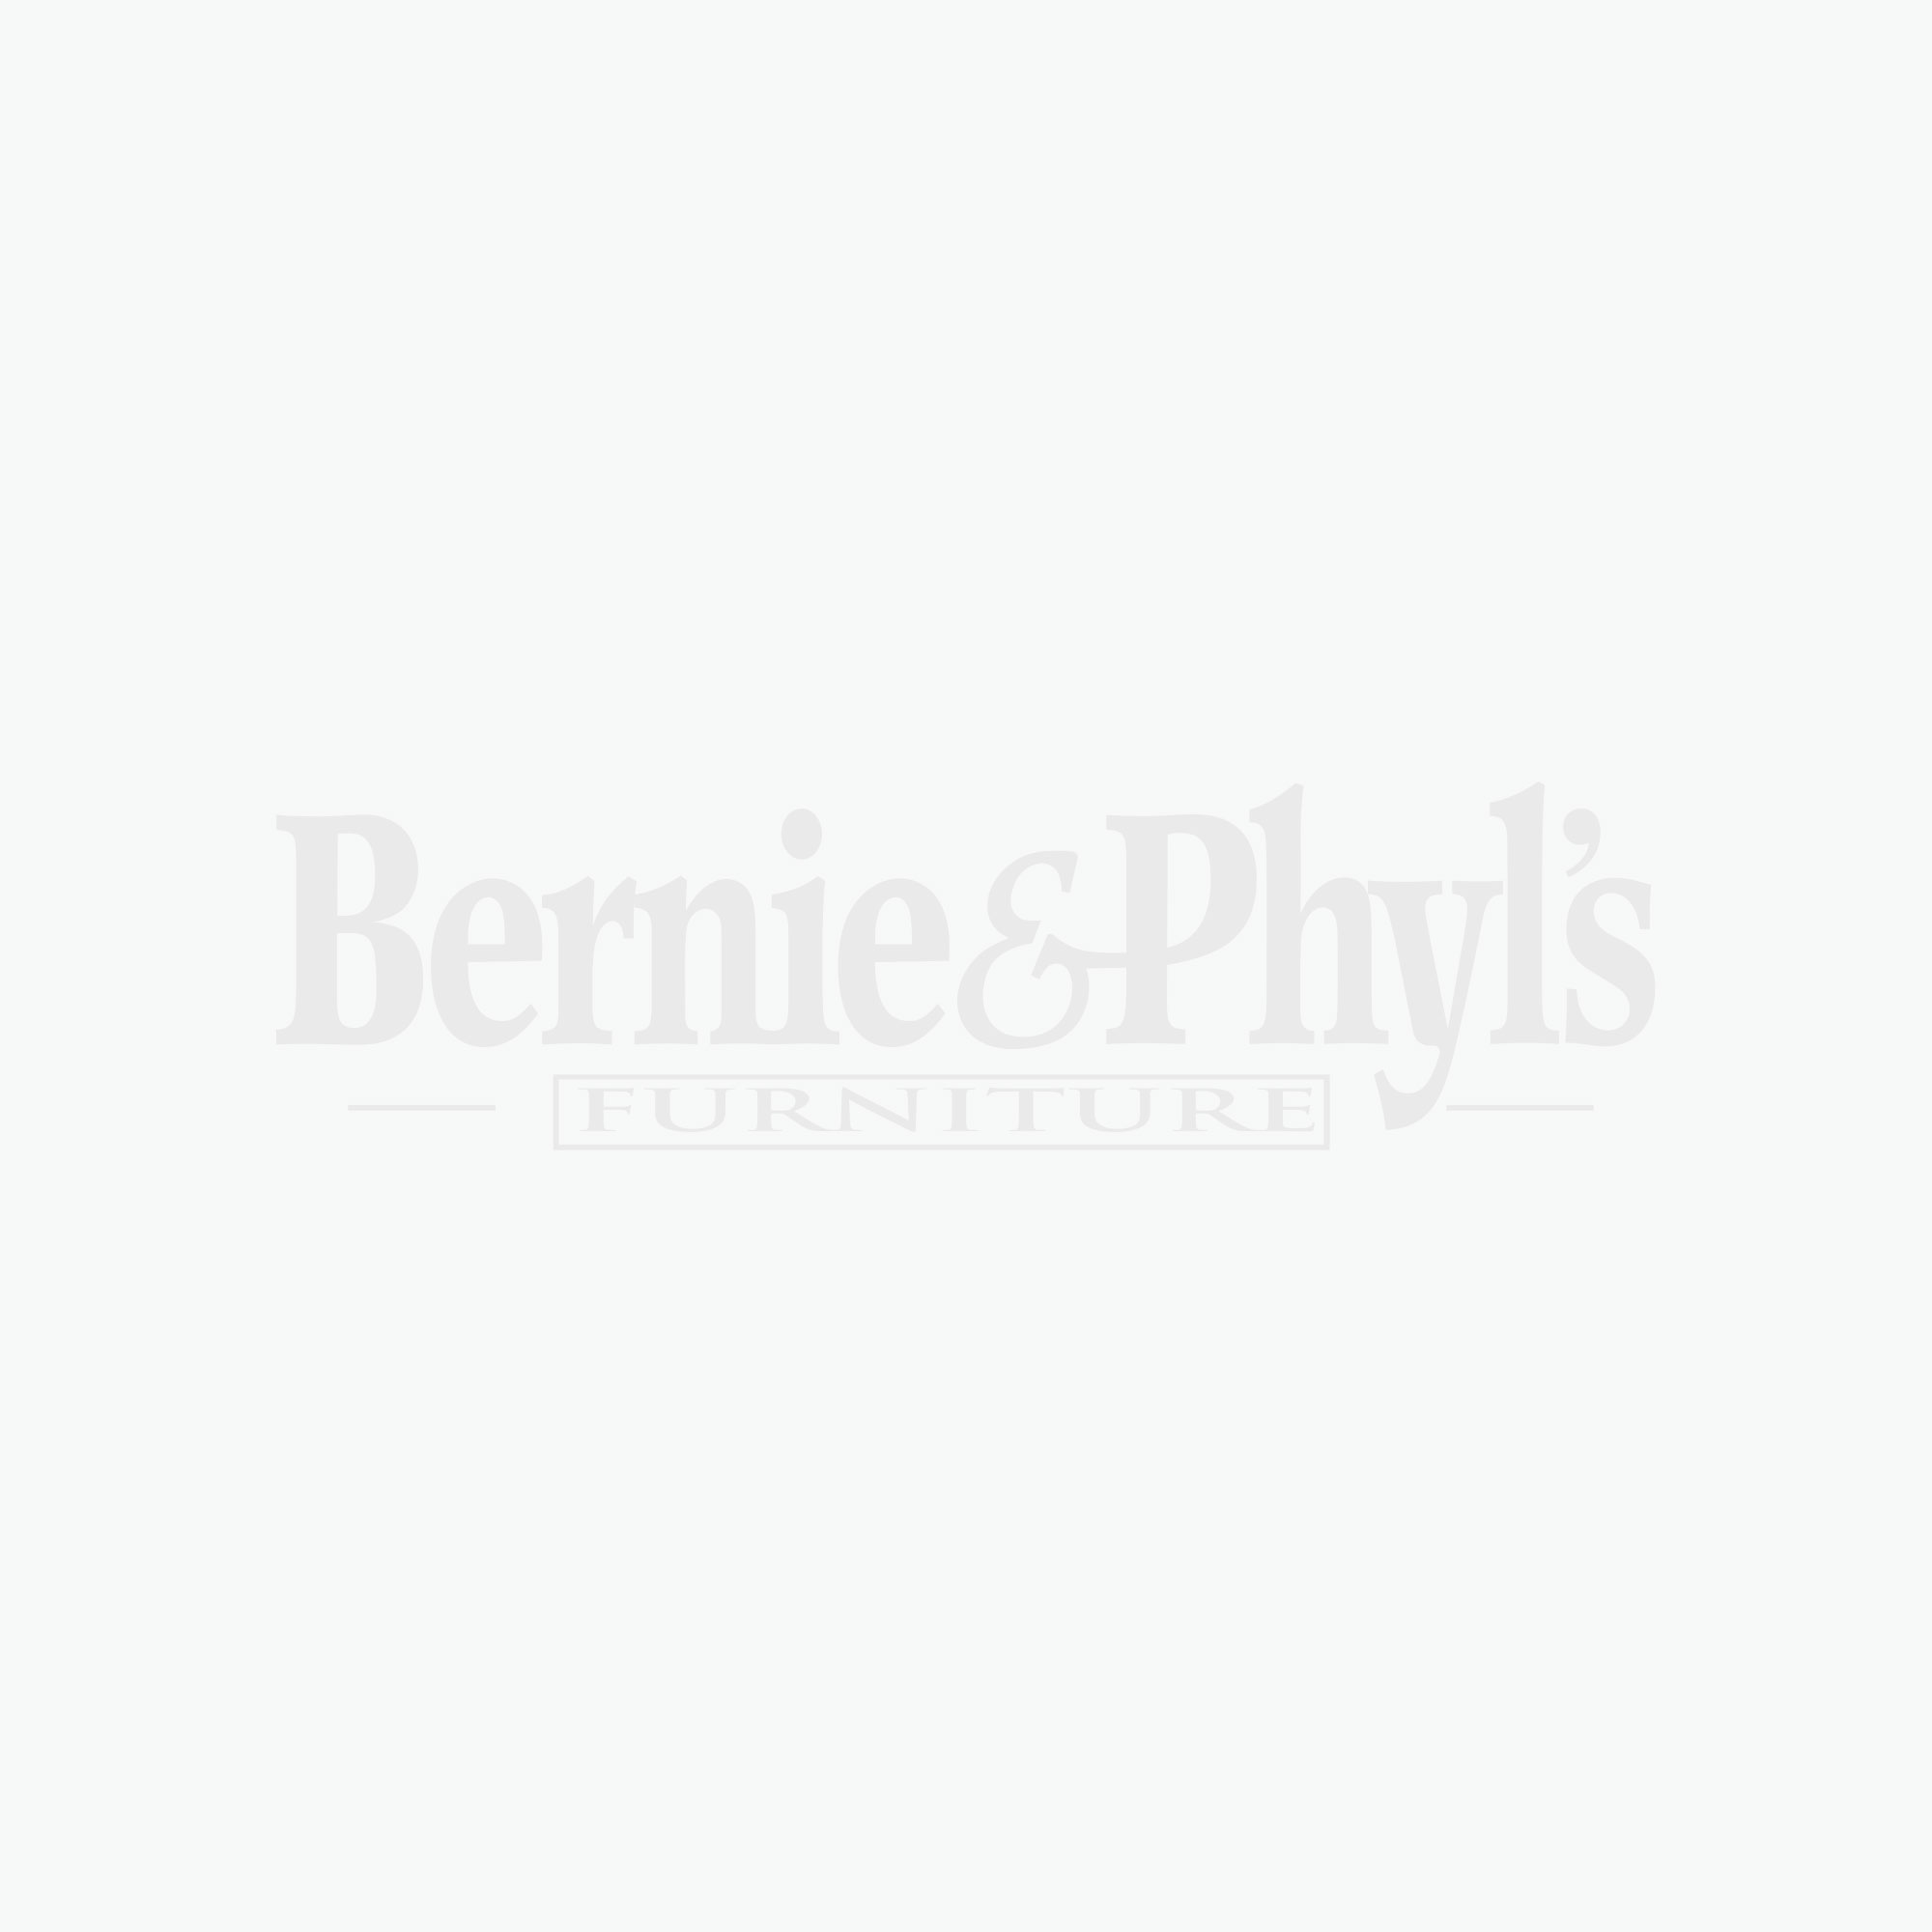 Airdon Occasional Table Set - Bronze Finish - (Set of 3) - T194-13 by Ashley Furniture Signature Design